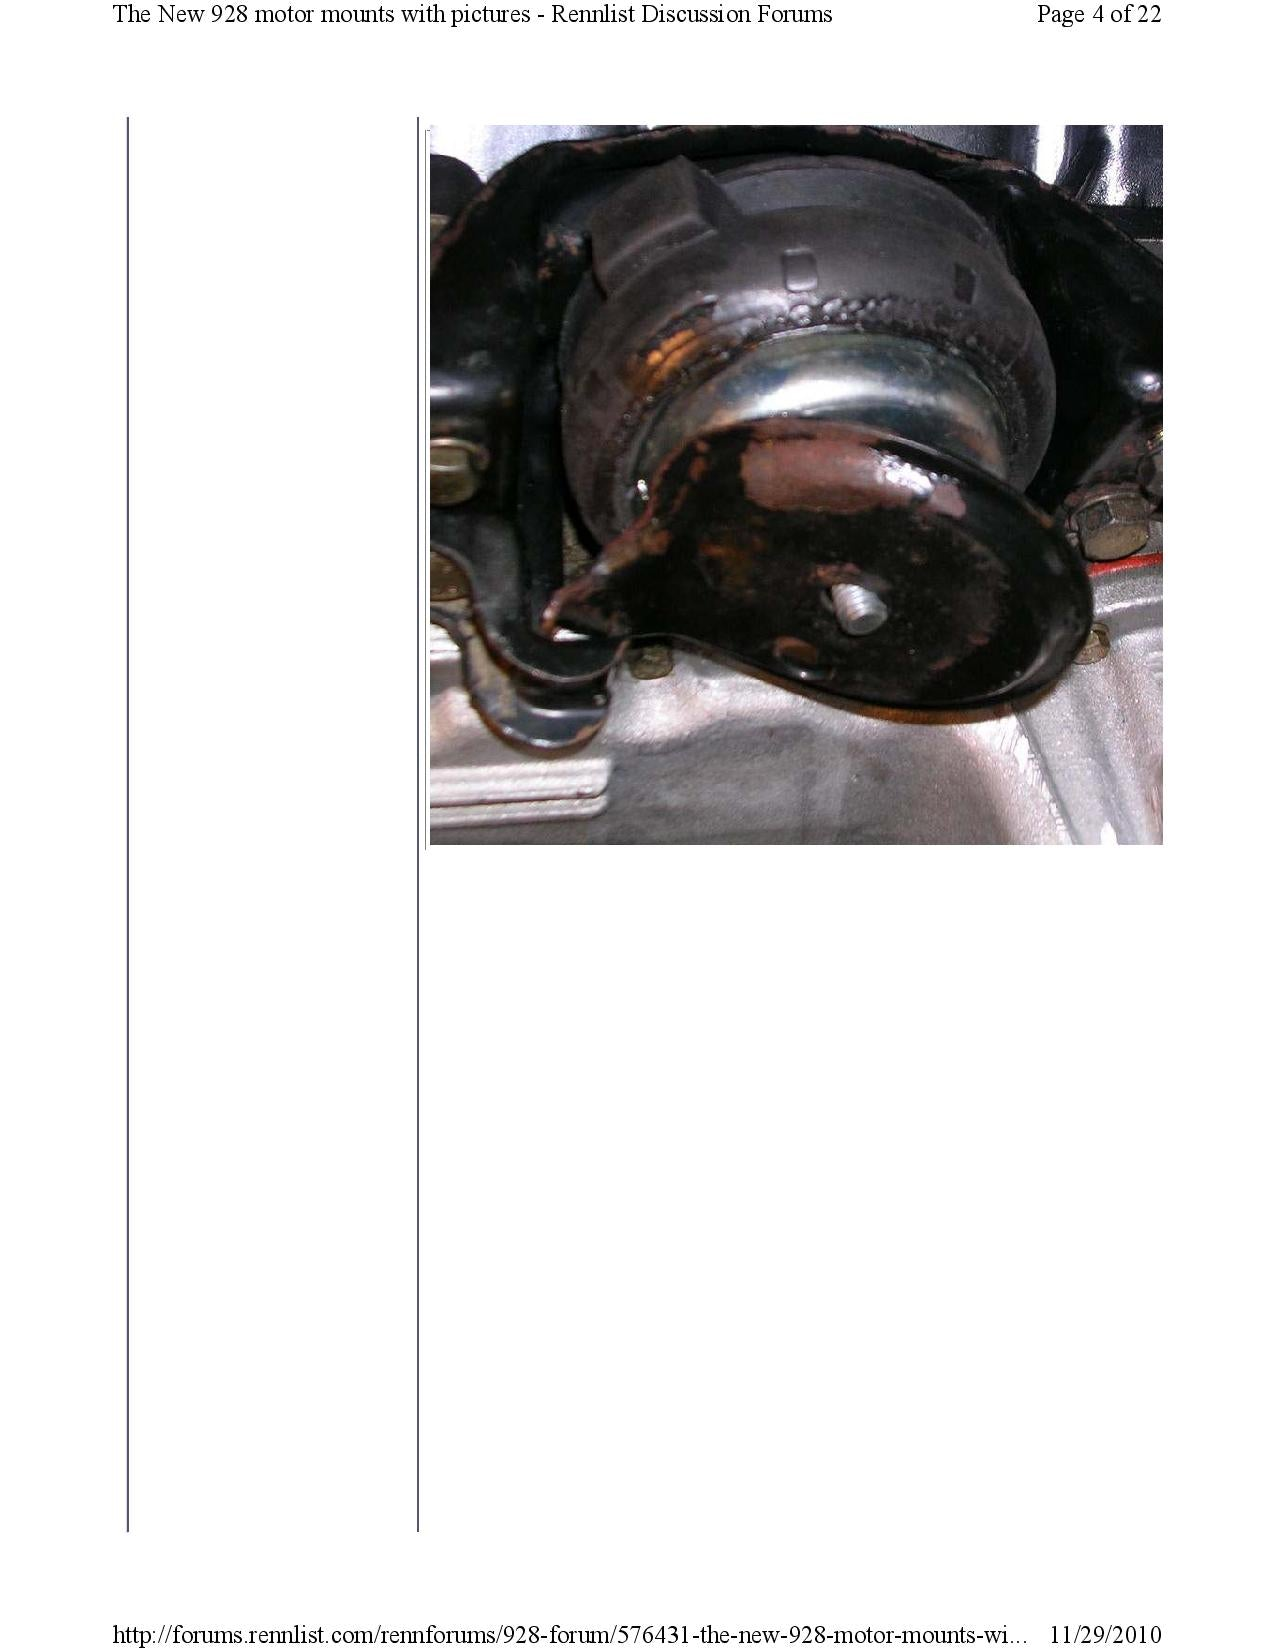 New 928 motor mounts with pictures pg4